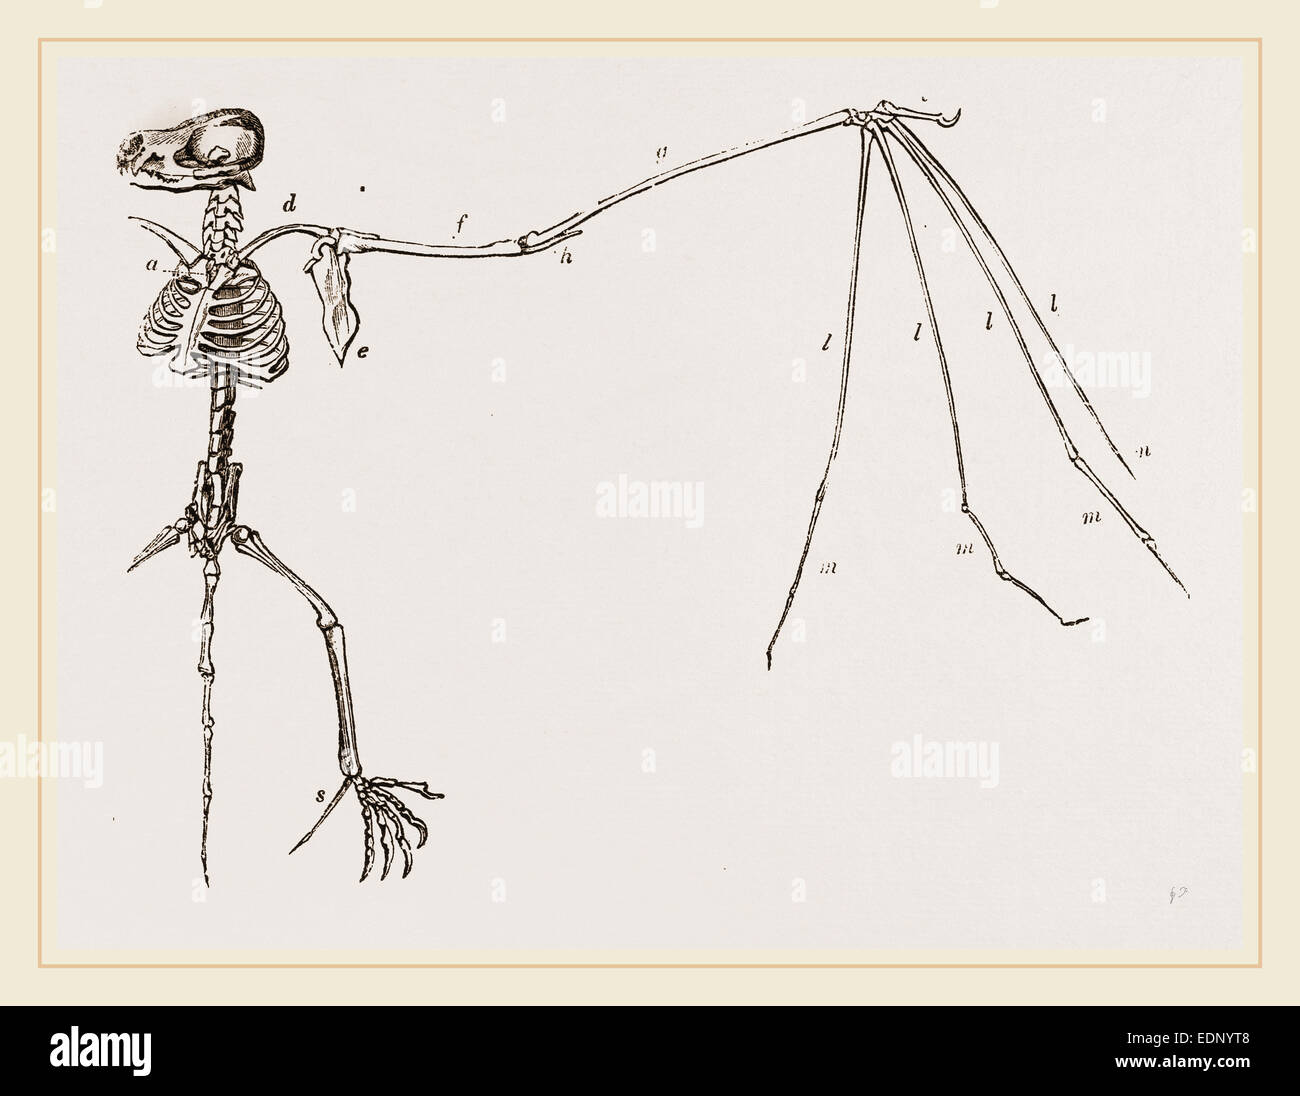 Bat Skeleton Stock Photos & Bat Skeleton Stock Images - Alamy